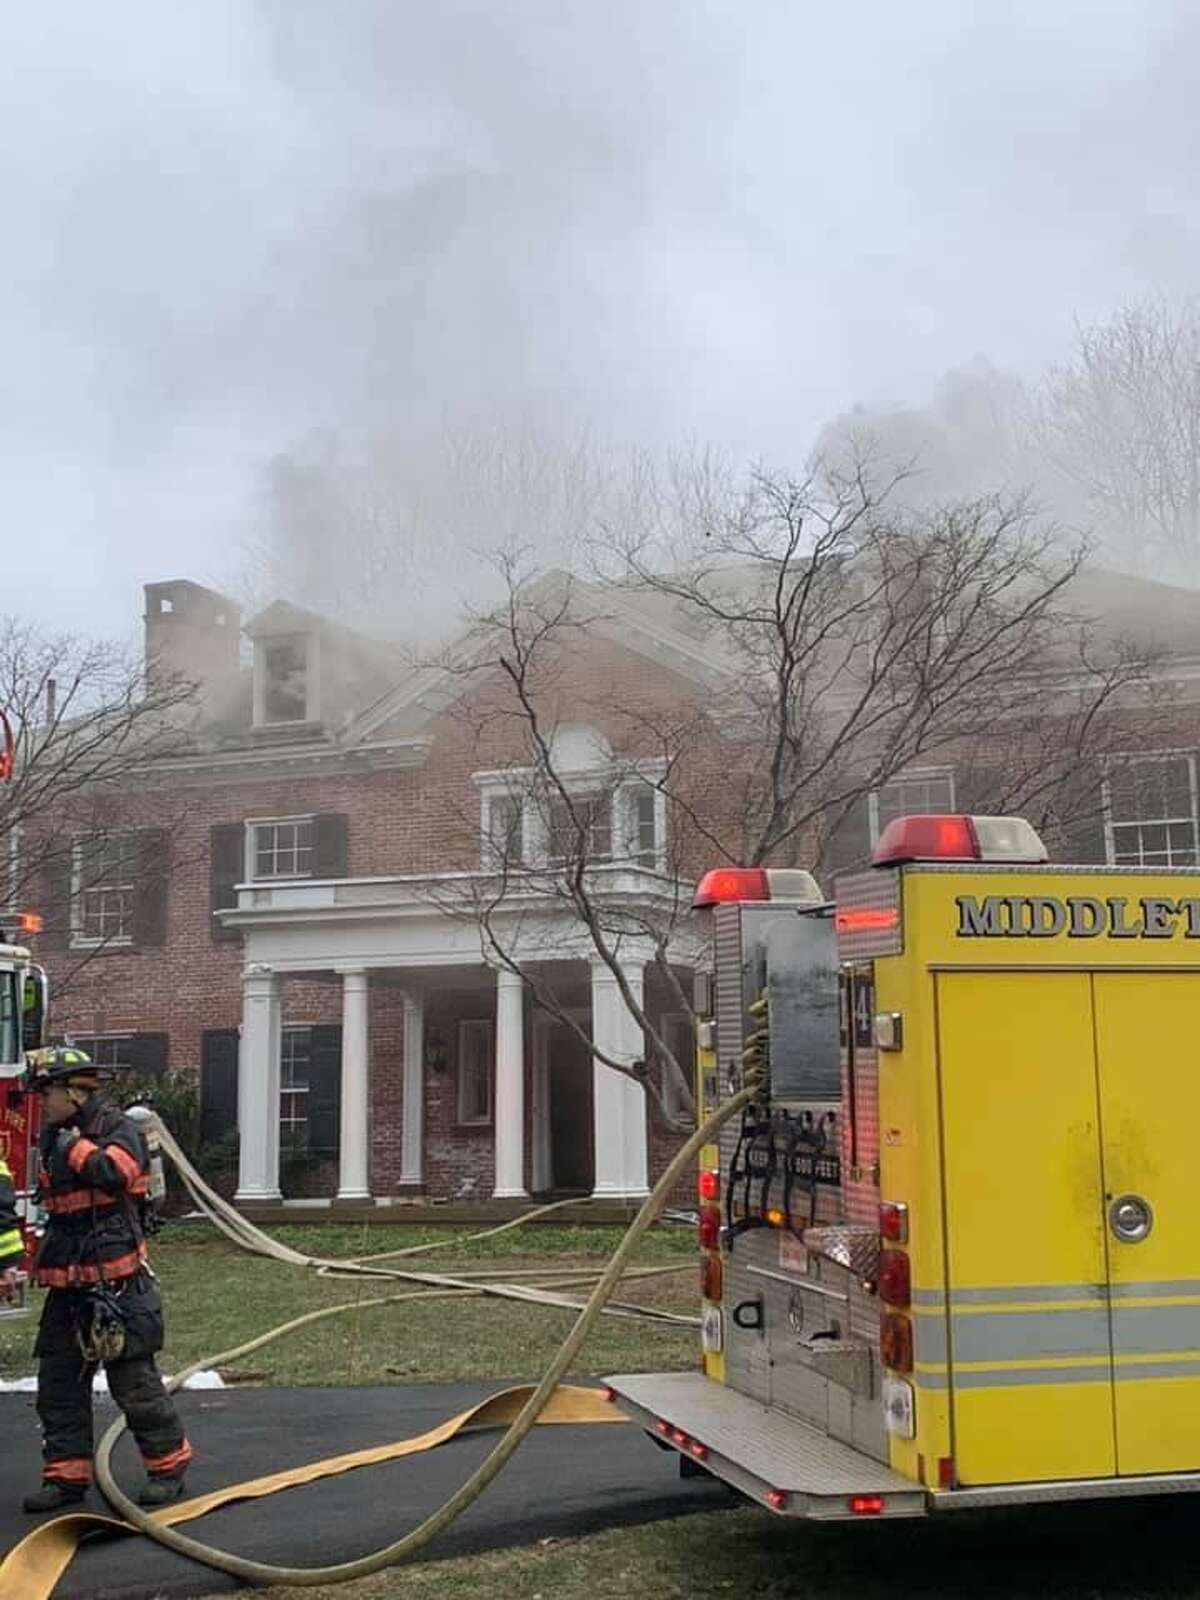 Fire units on scene for an attic fire in Middletown, Conn., on Monday, Jan. 11, 2021.